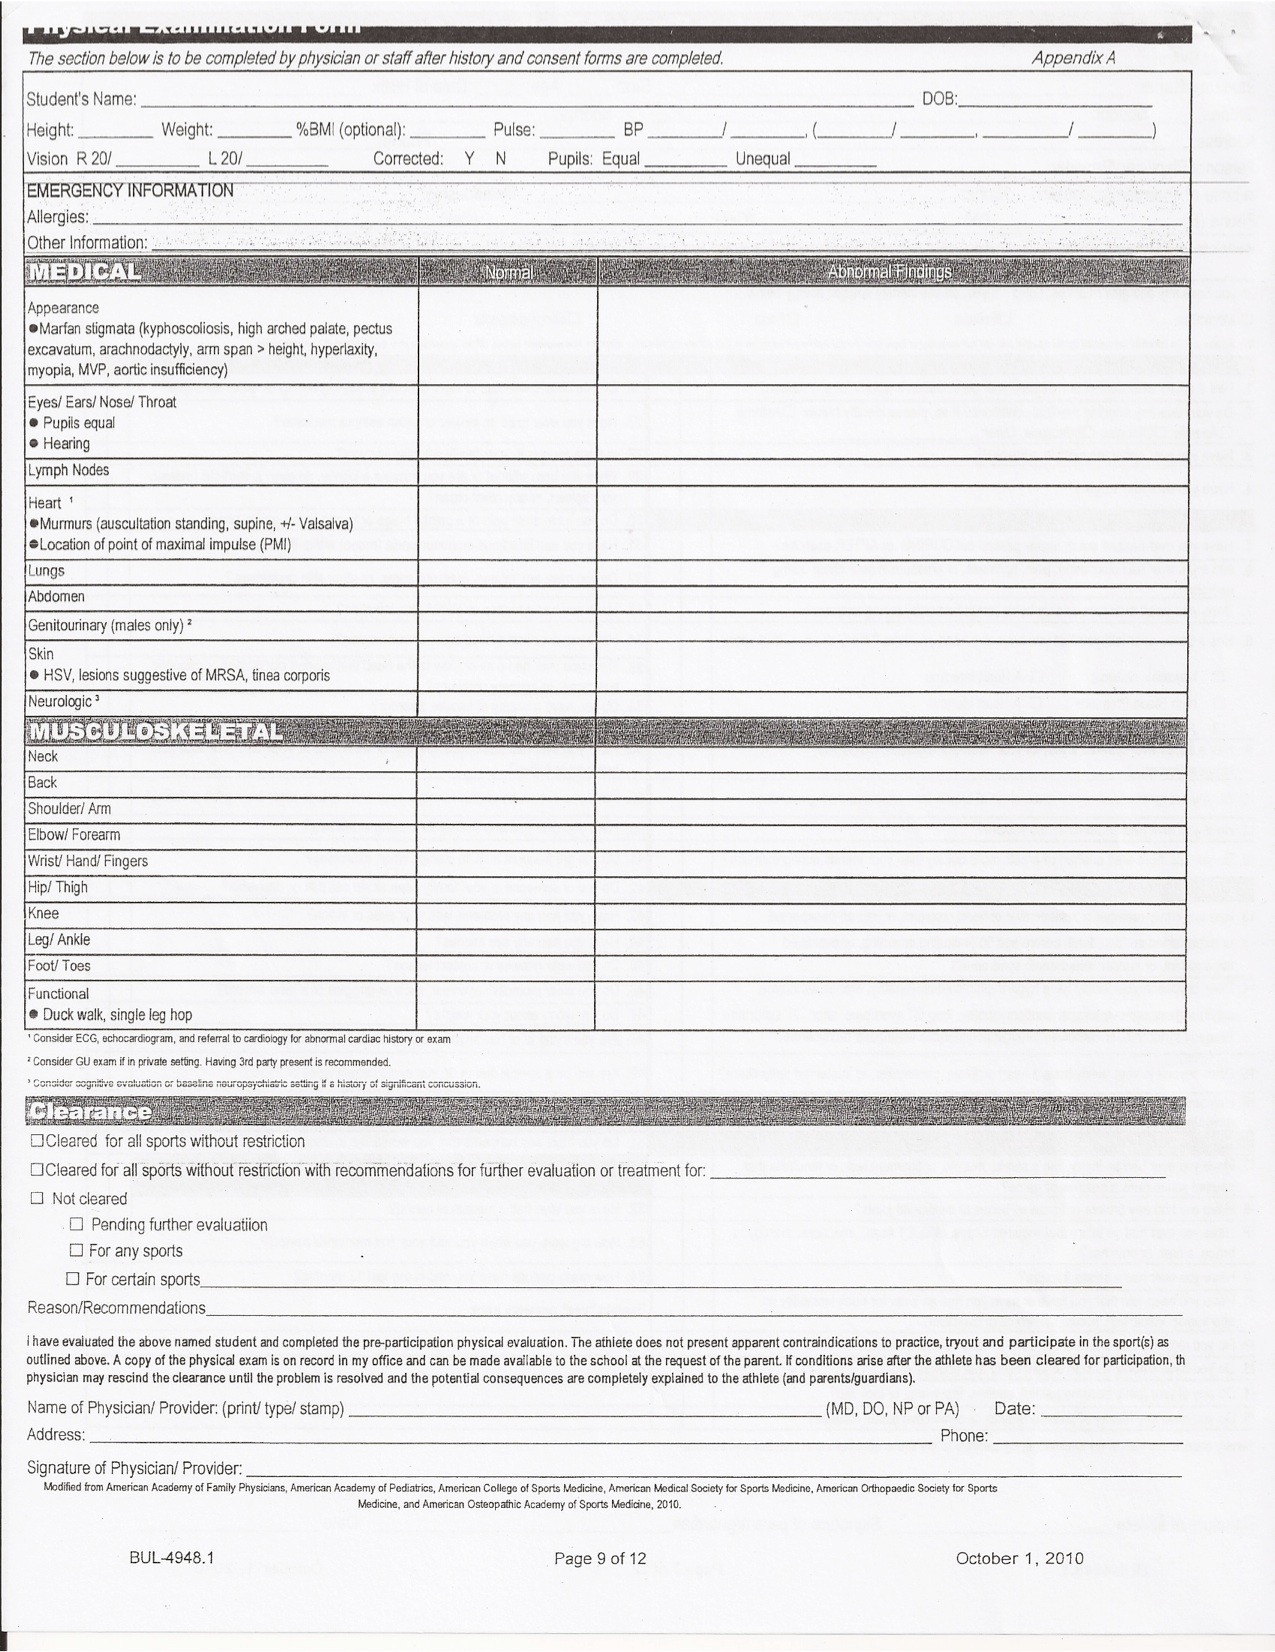 Work Physical Exam Blank Form Bing images – Physical Exam Form